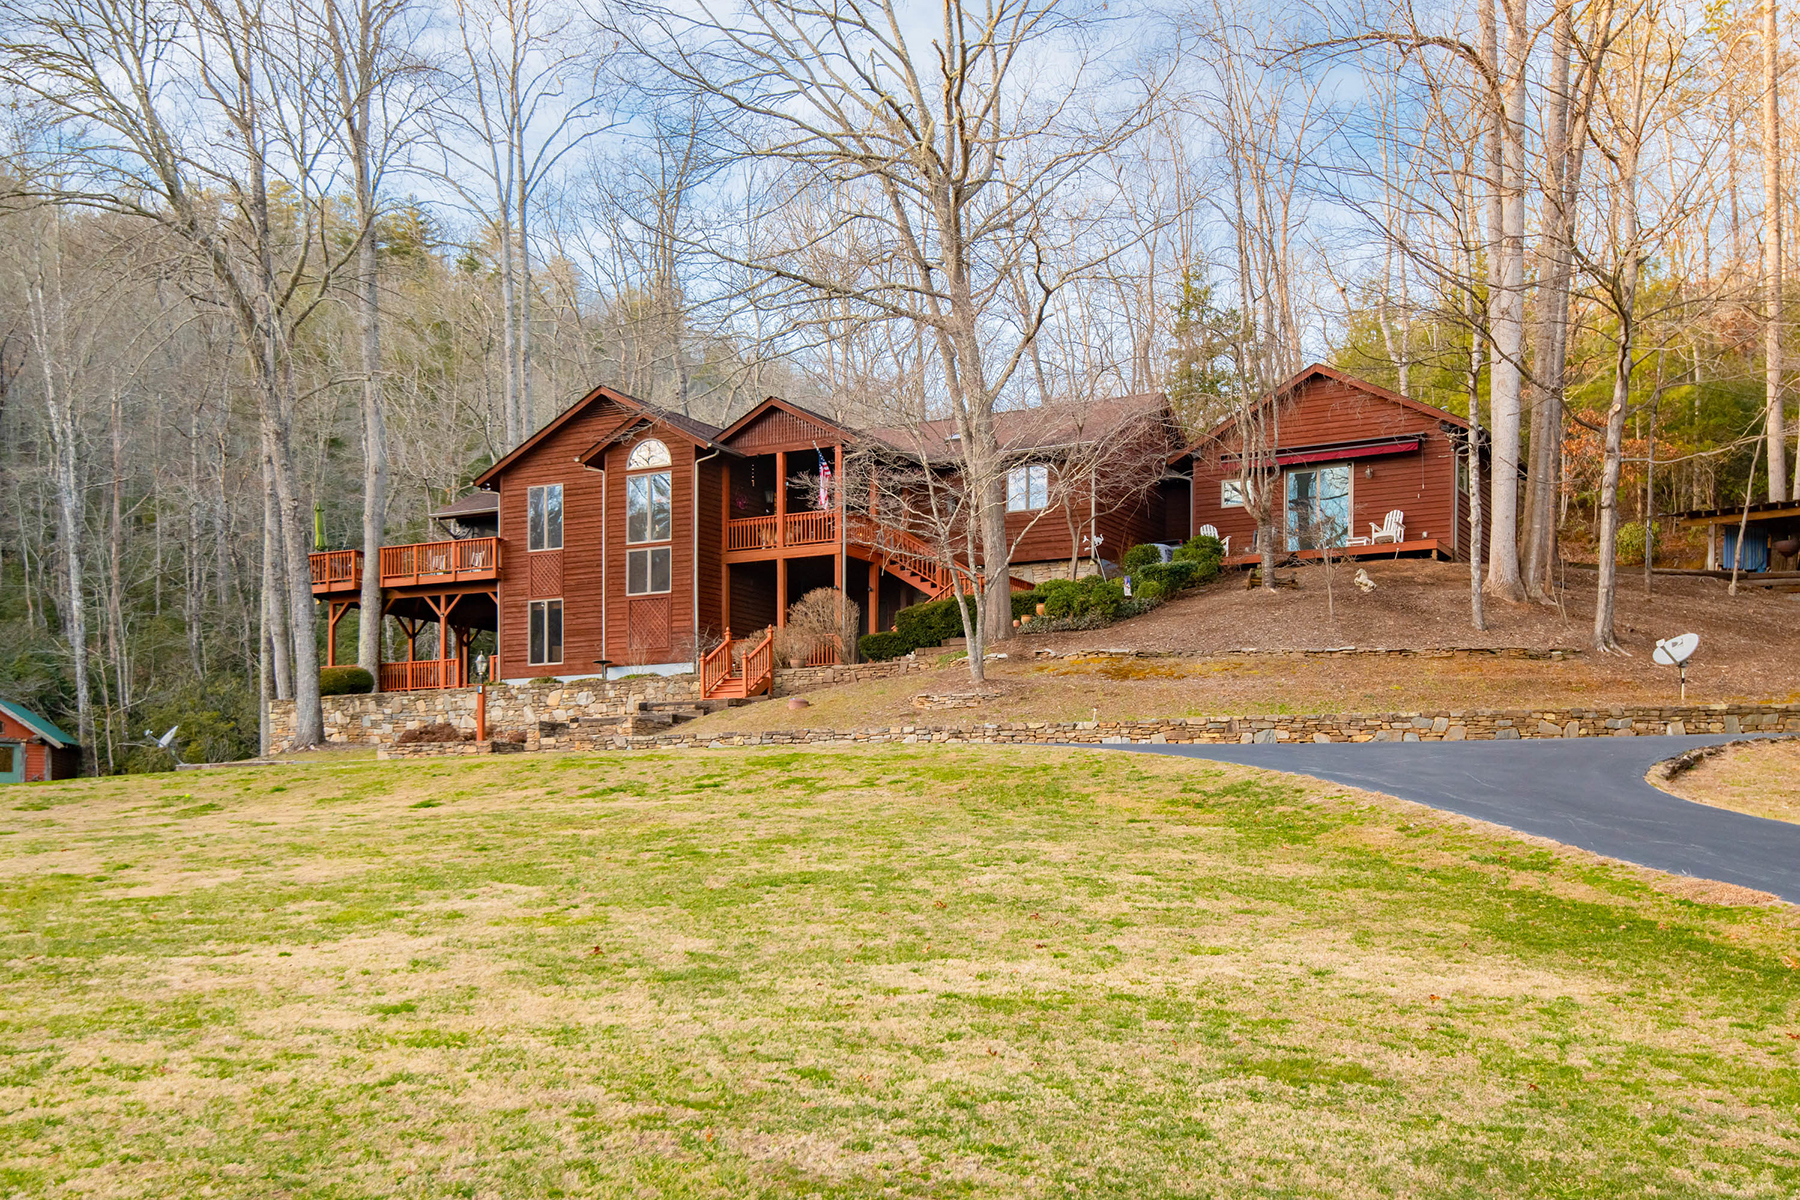 Single Family Homes for Active at PISGAH FOREST 1393 King Rd Pisgah Forest, North Carolina 28768 United States